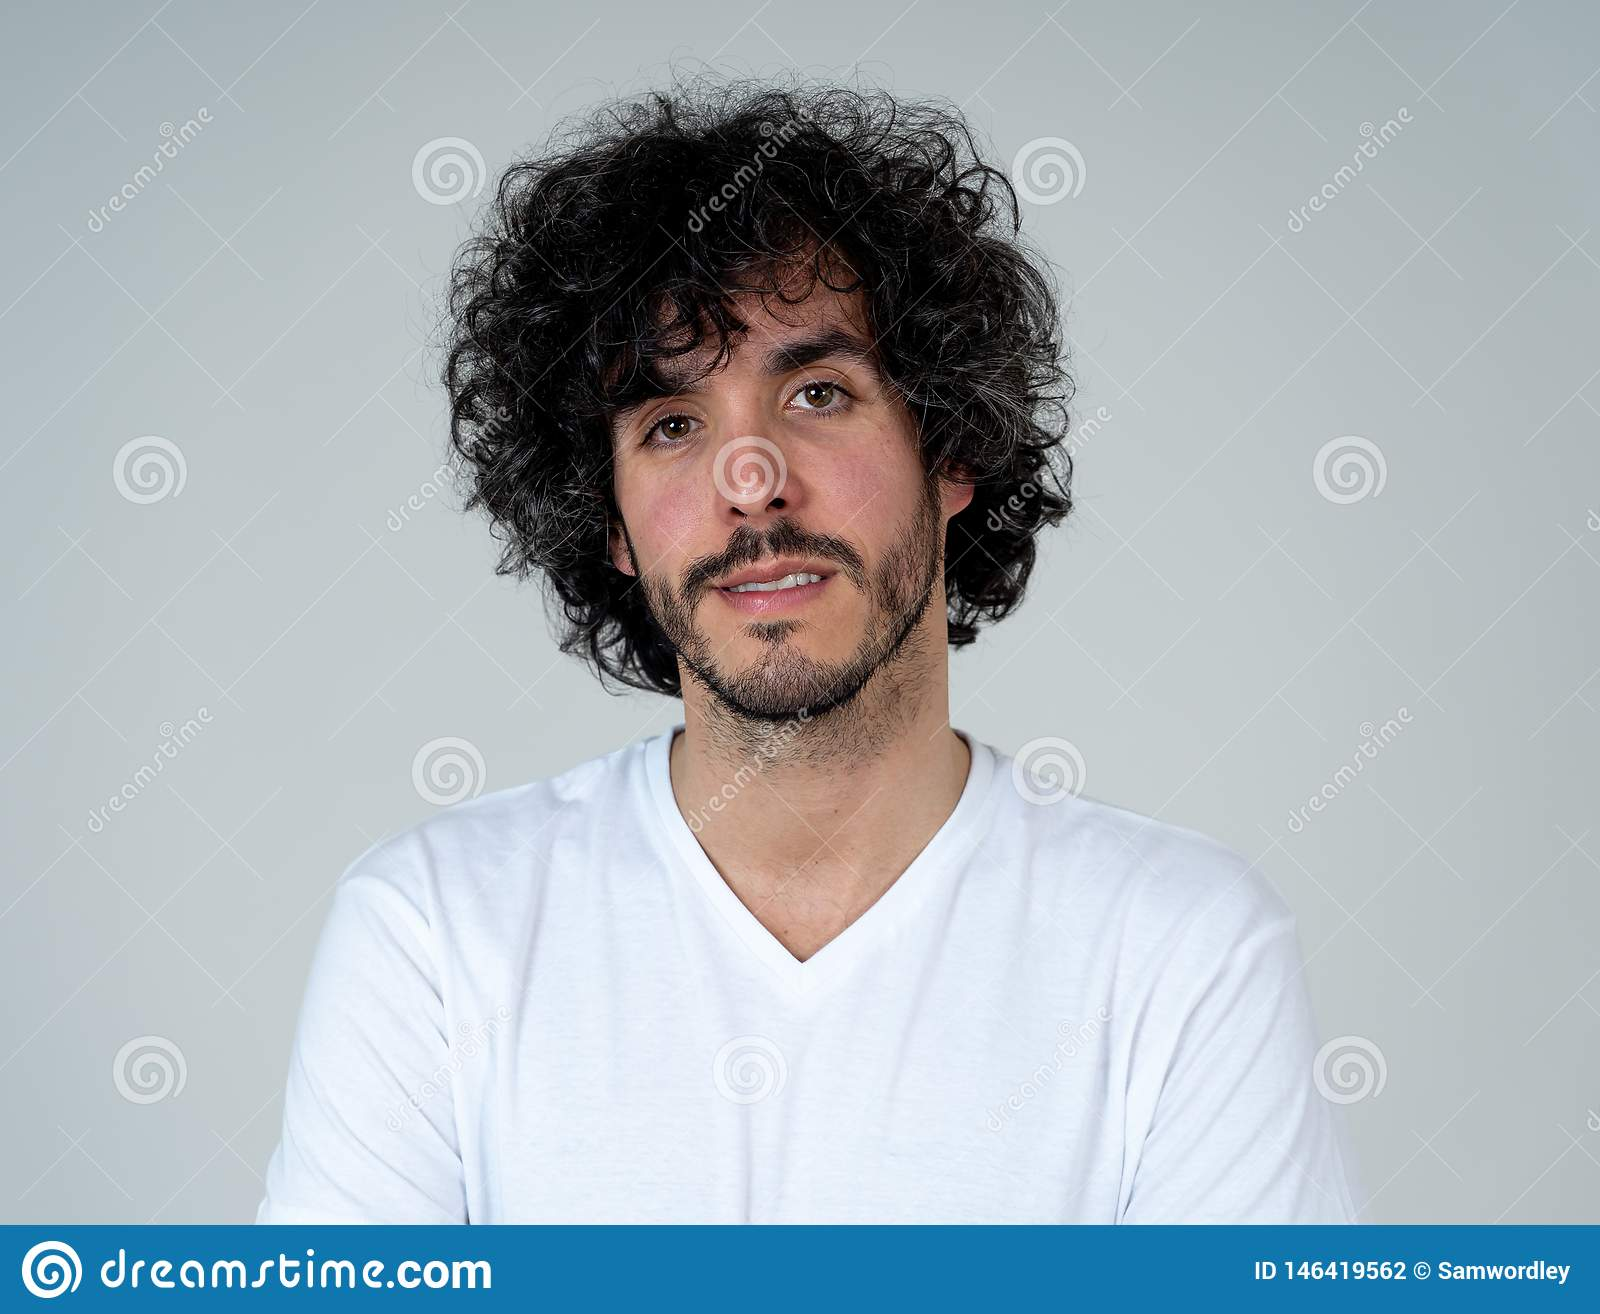 Natural portrait of young attractive man in his 20s looking and posing with neutral face expression